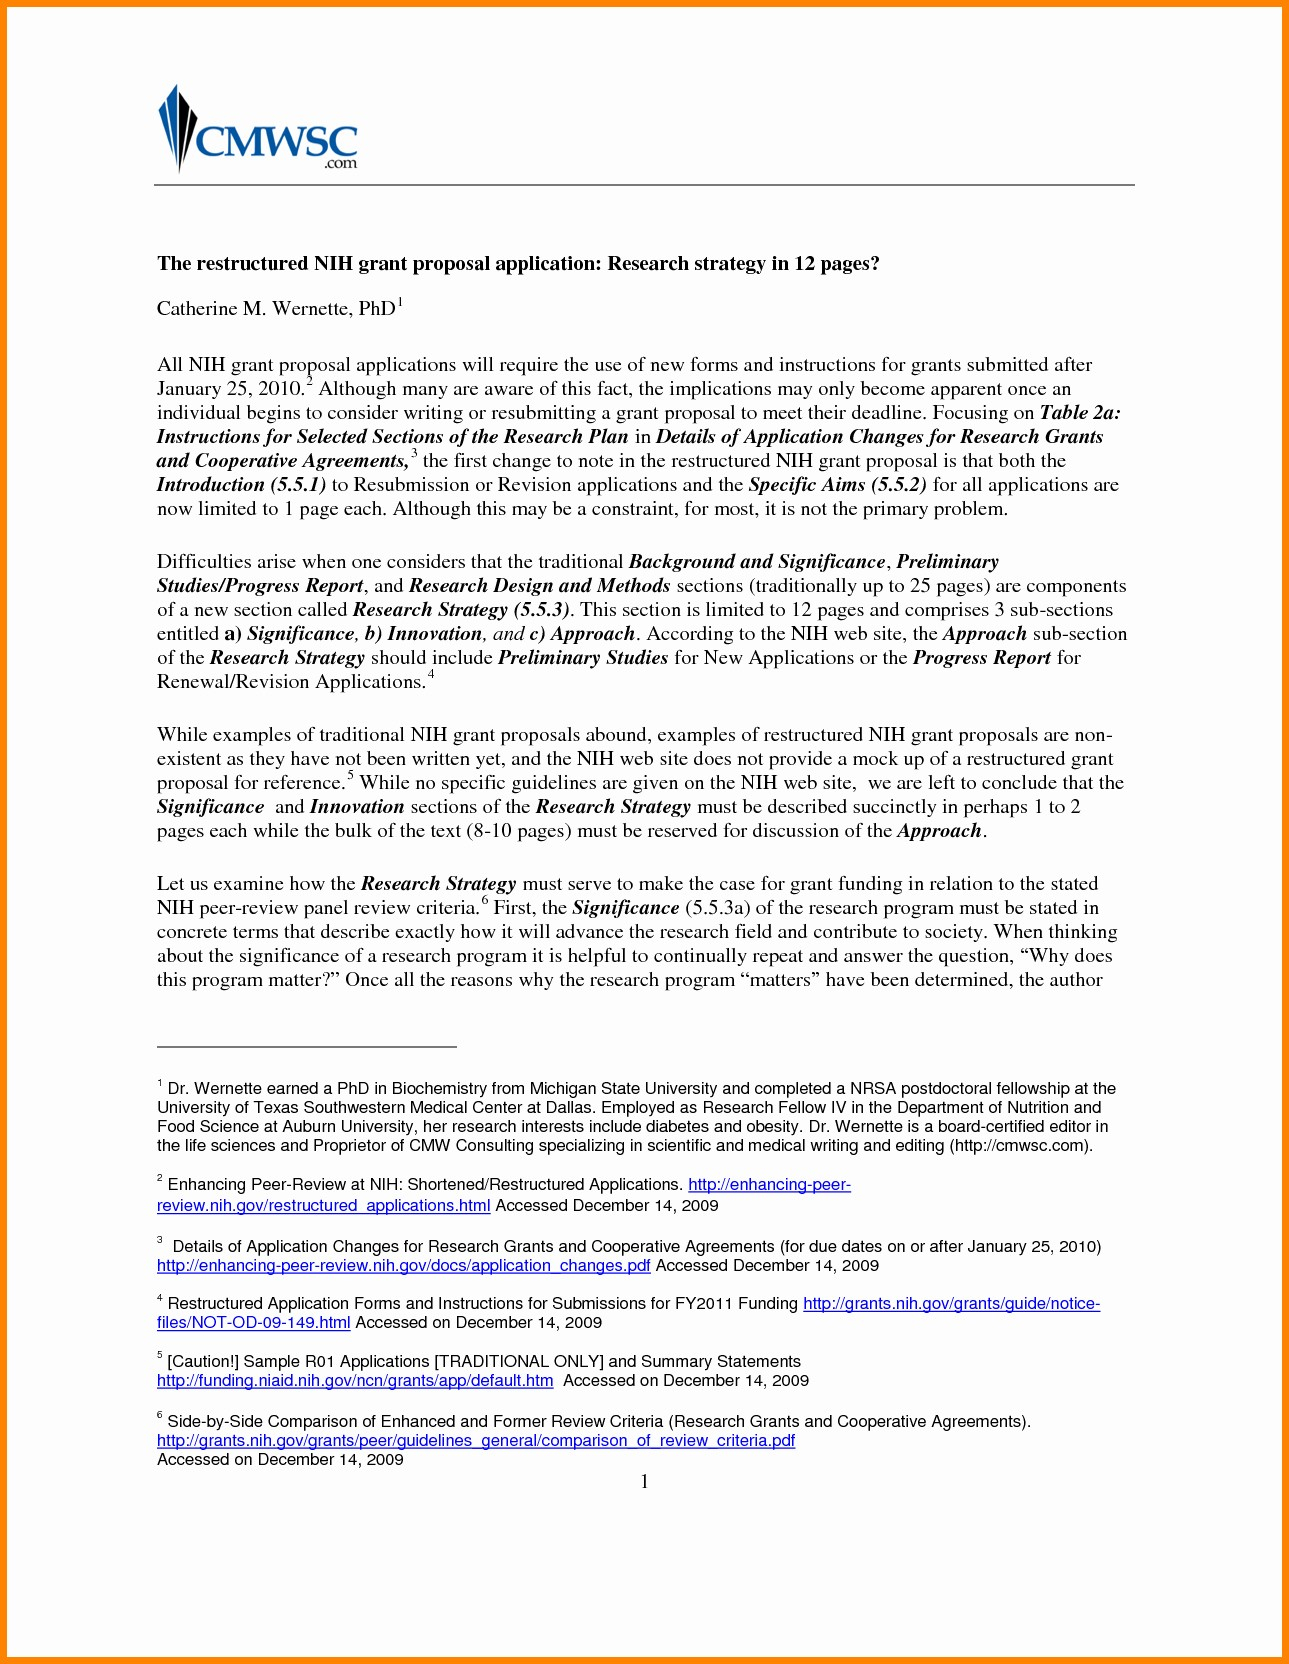 Offer Letter Template Google Docs - Unique Google Docs Timeline Template